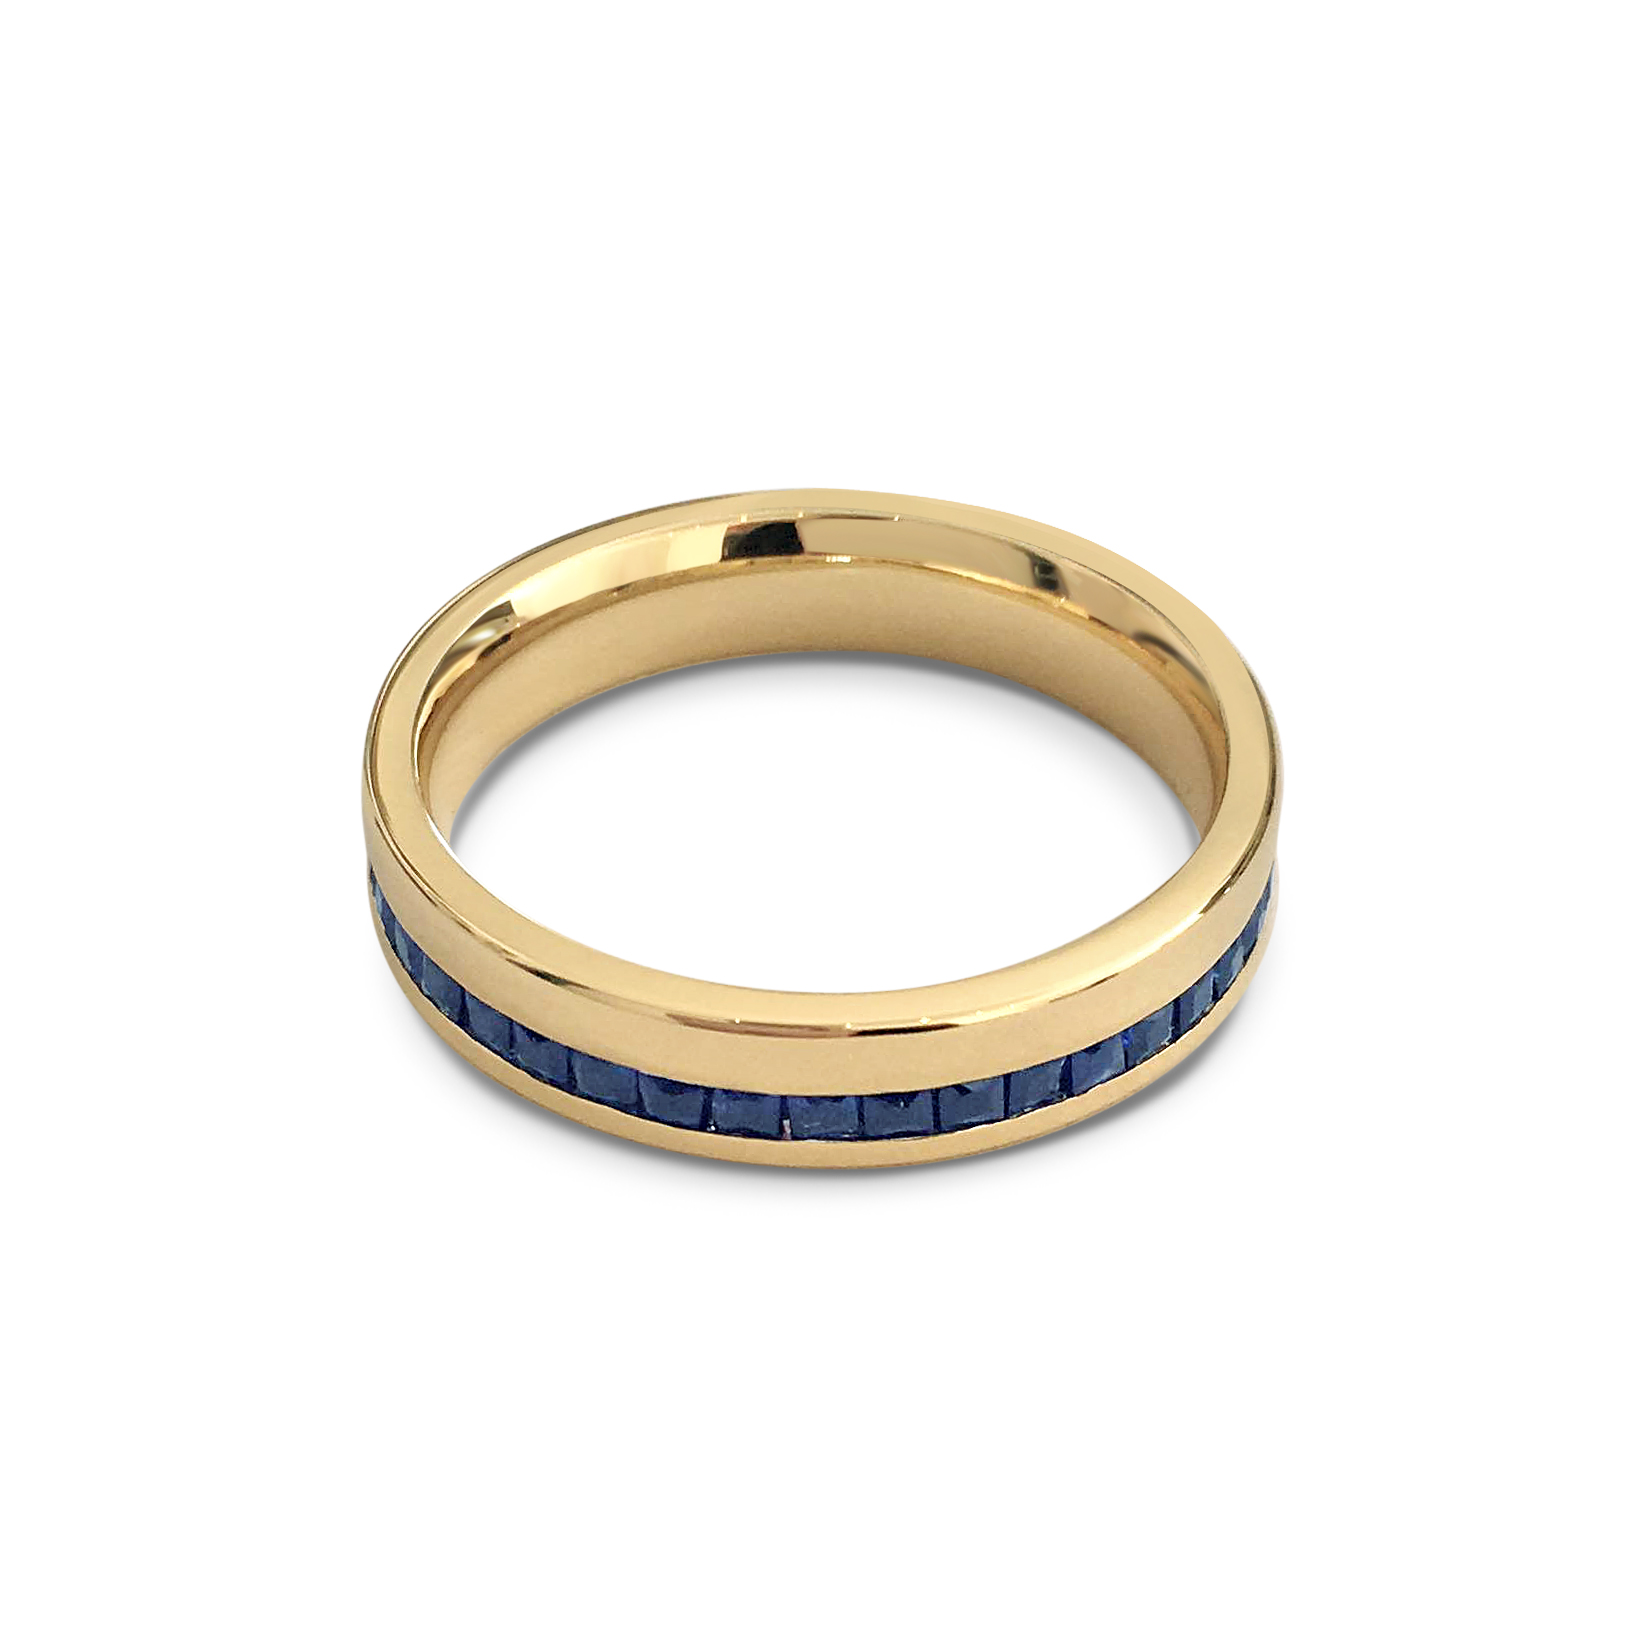 Sapphire-and-18ct-yellow-gold-ring.jpg